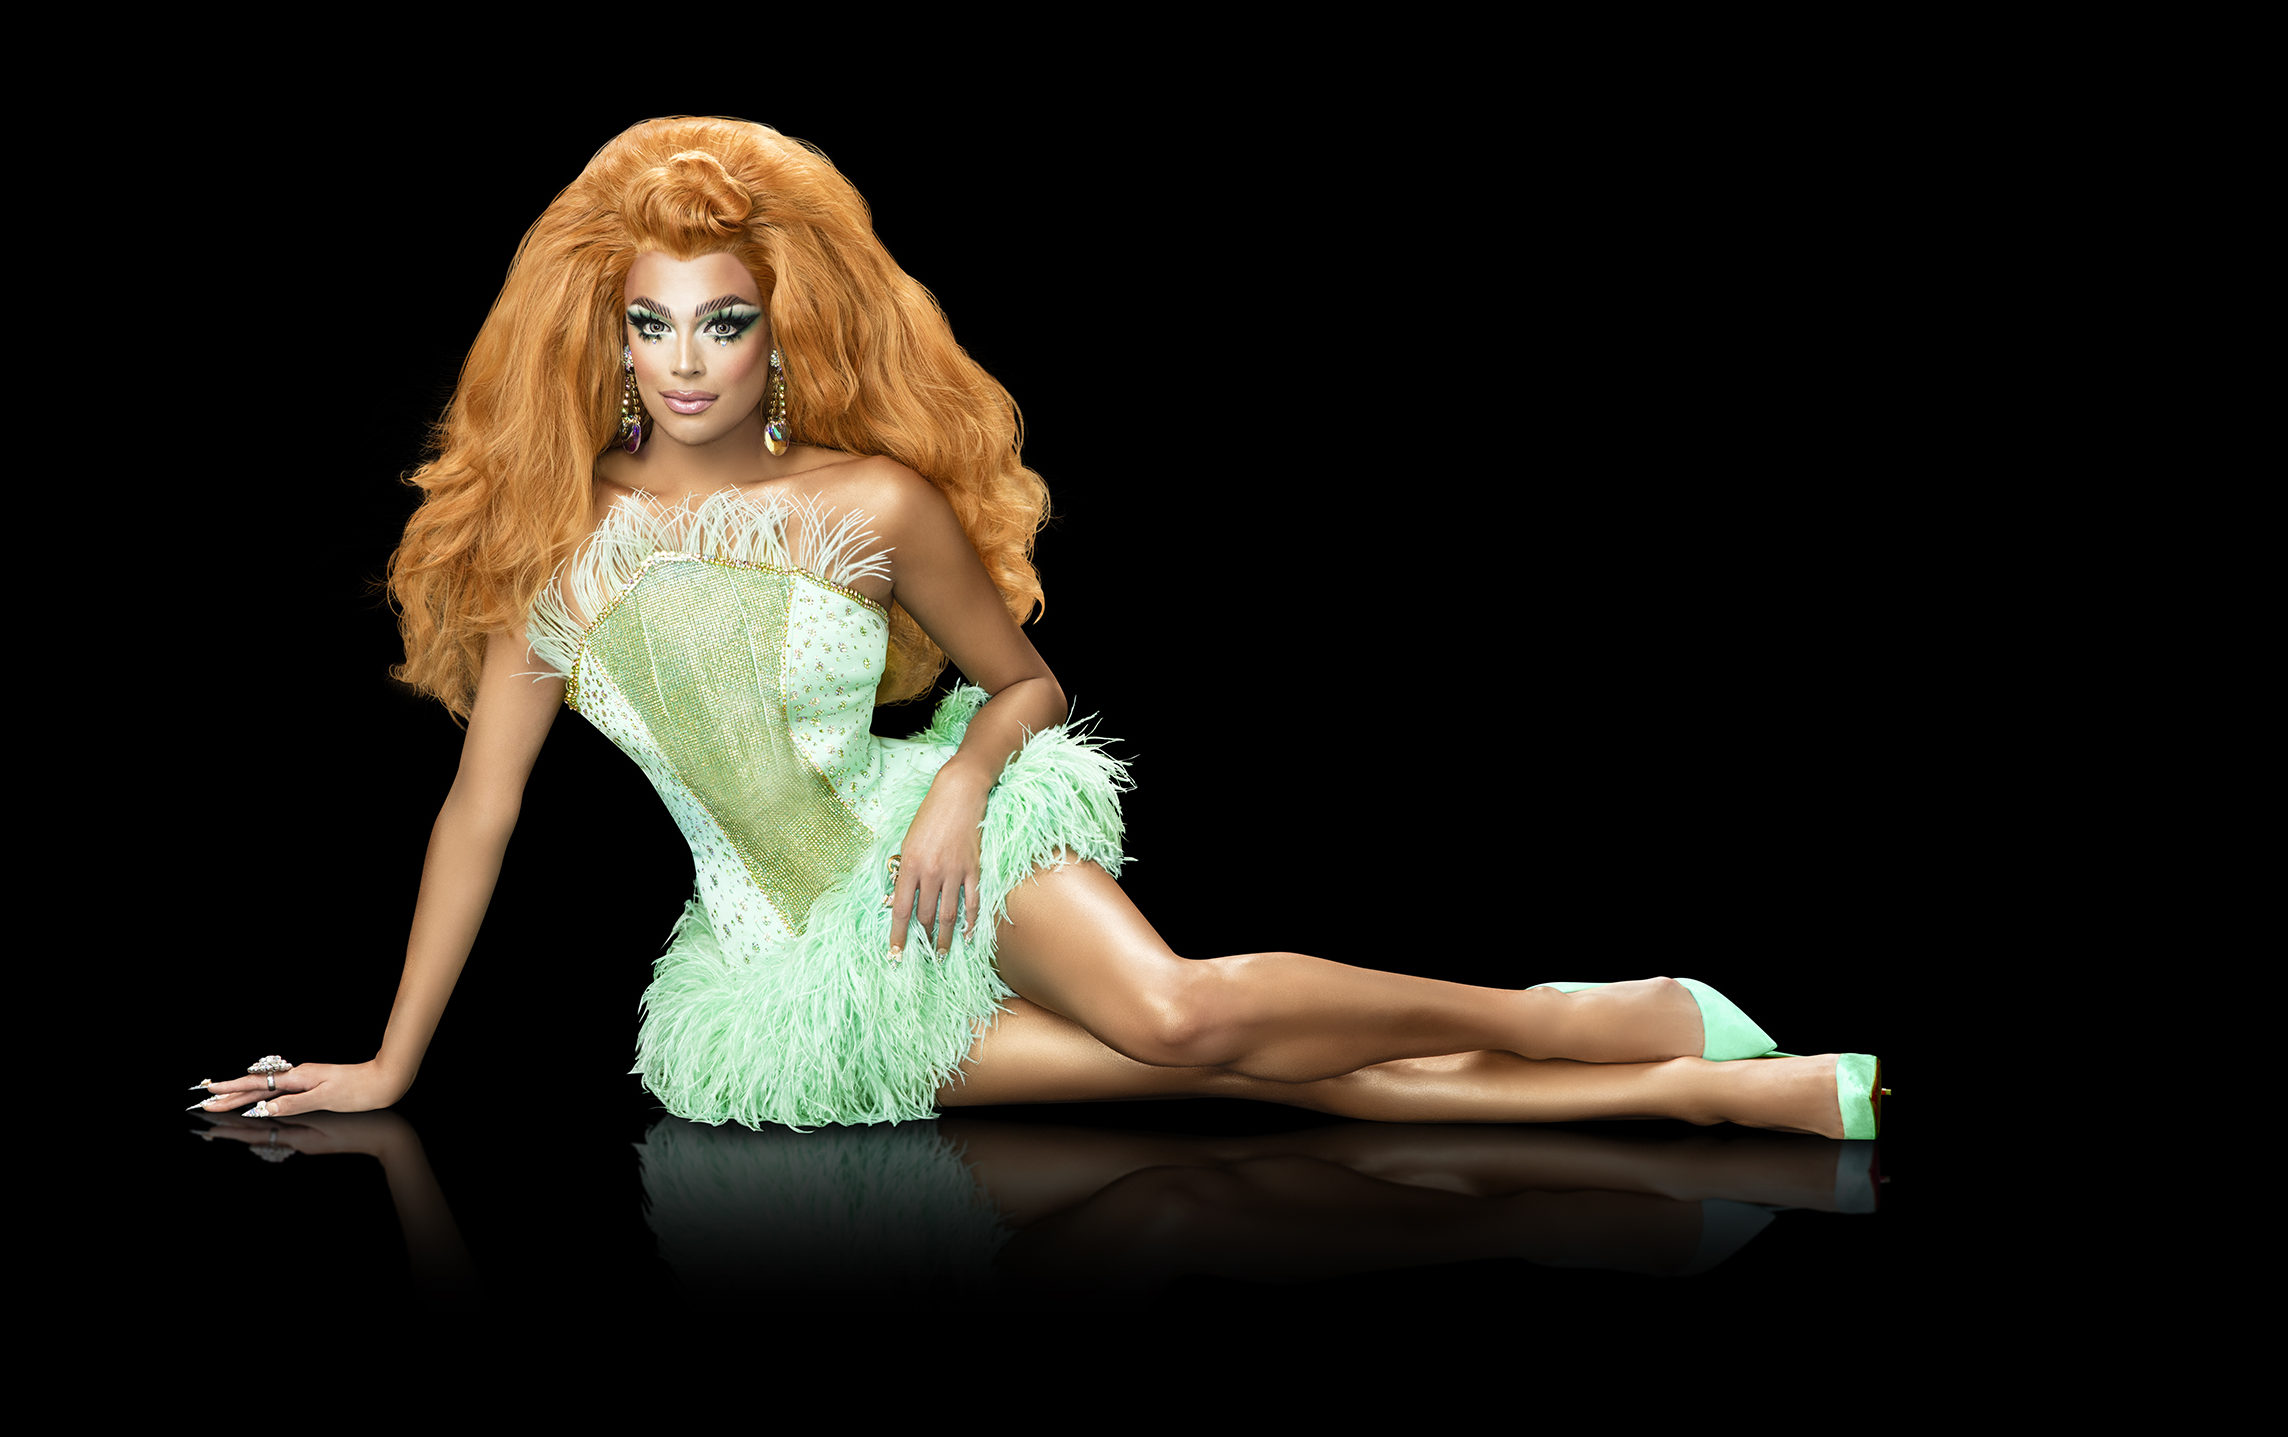 valentina archives - just add color